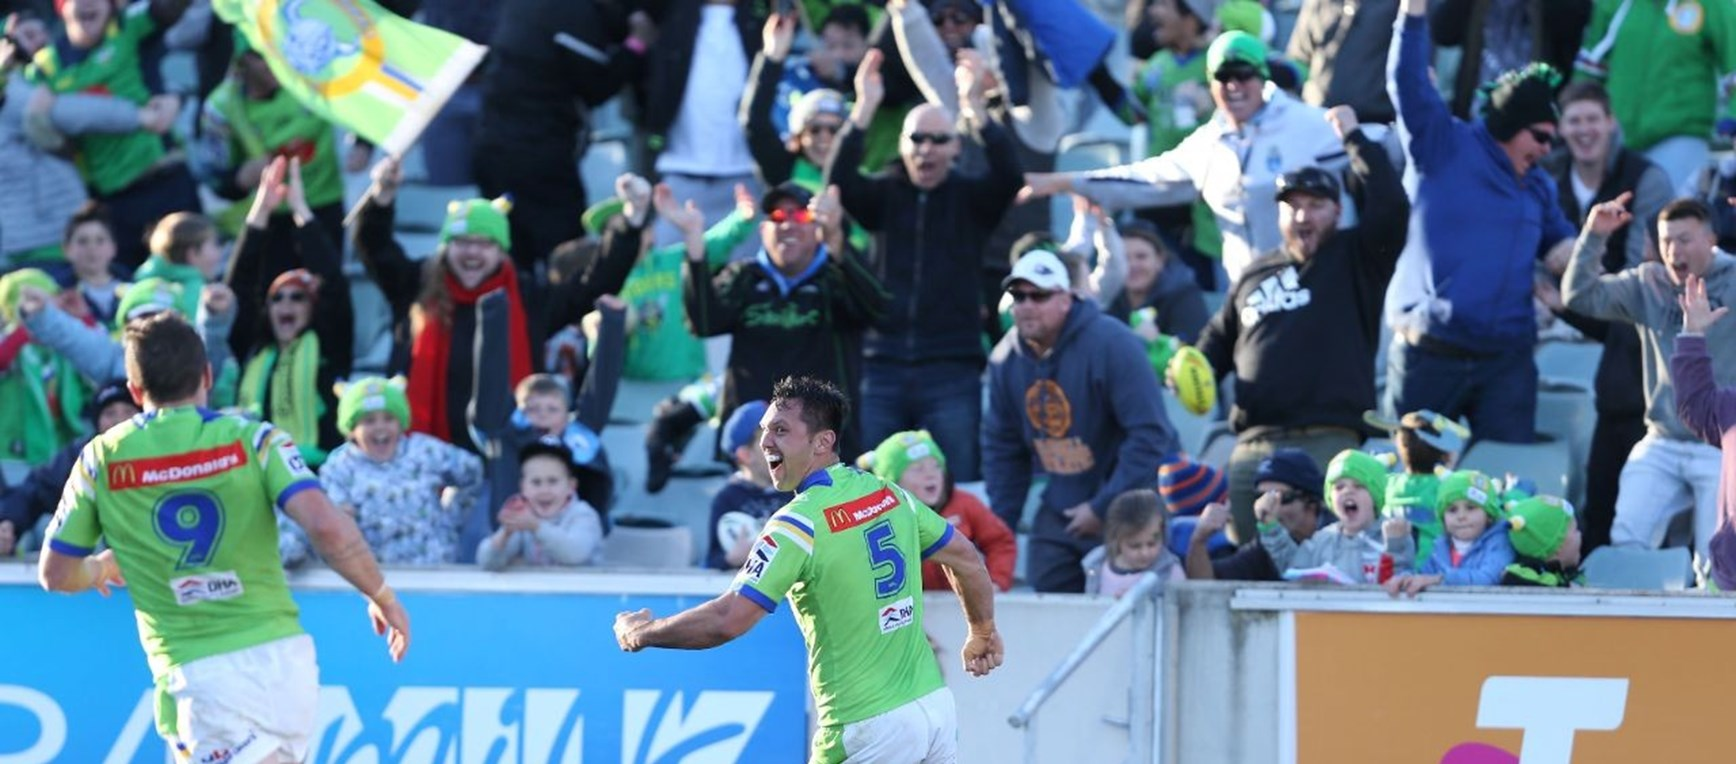 Gallery: Raiders v Knights